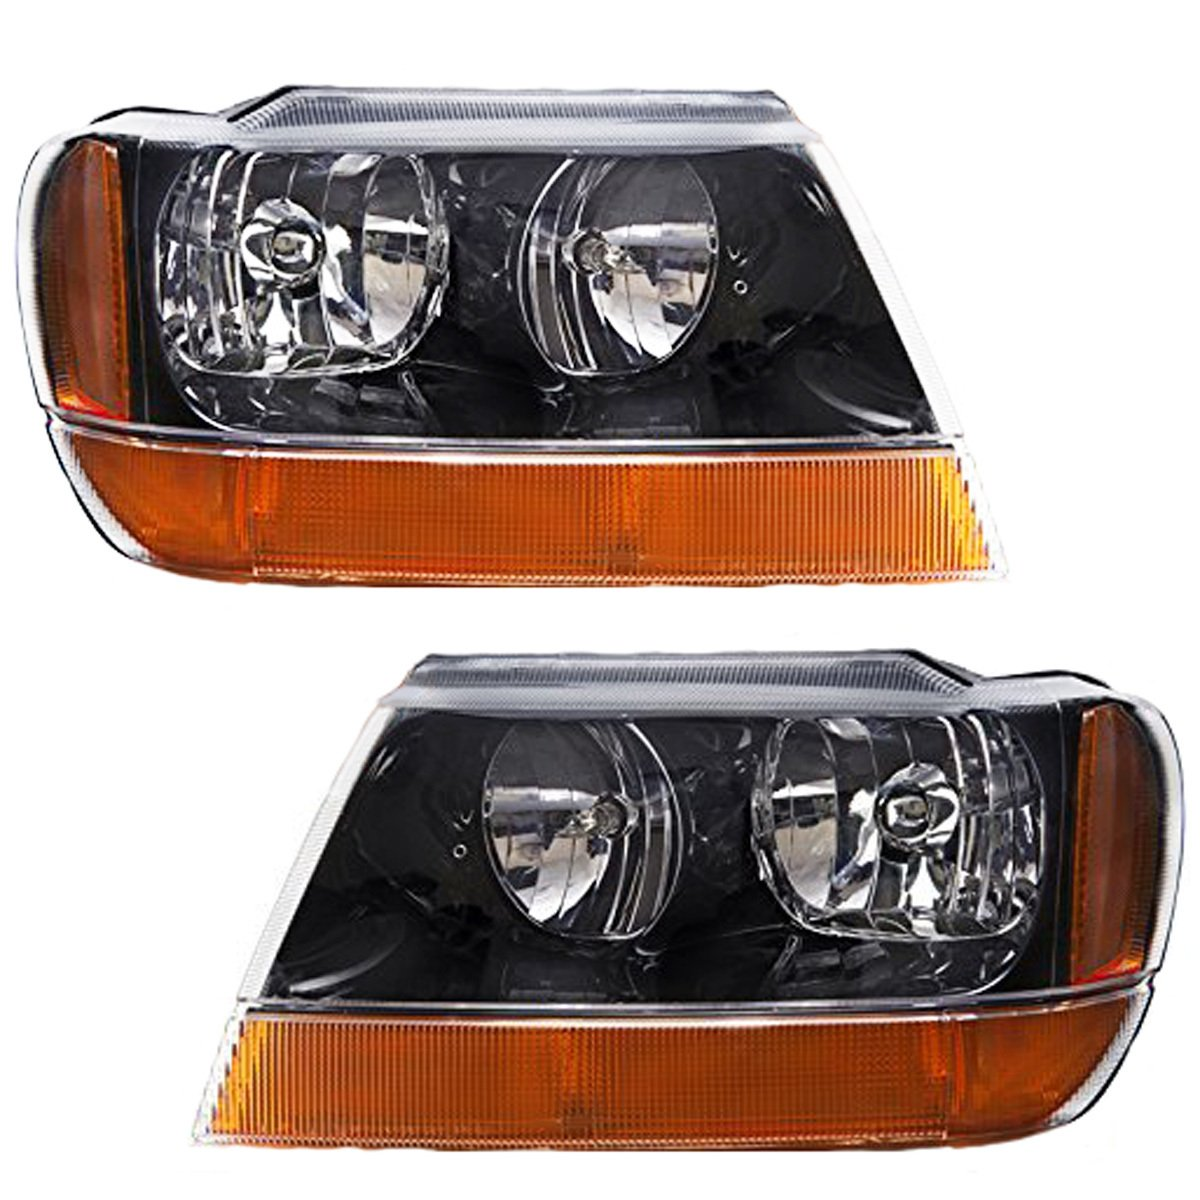 amazon com headlightsdepot compatible with jeep grand cherokeeamazon com headlightsdepot compatible with jeep grand cherokee laredo new black headlights set w amber signal lights automotive